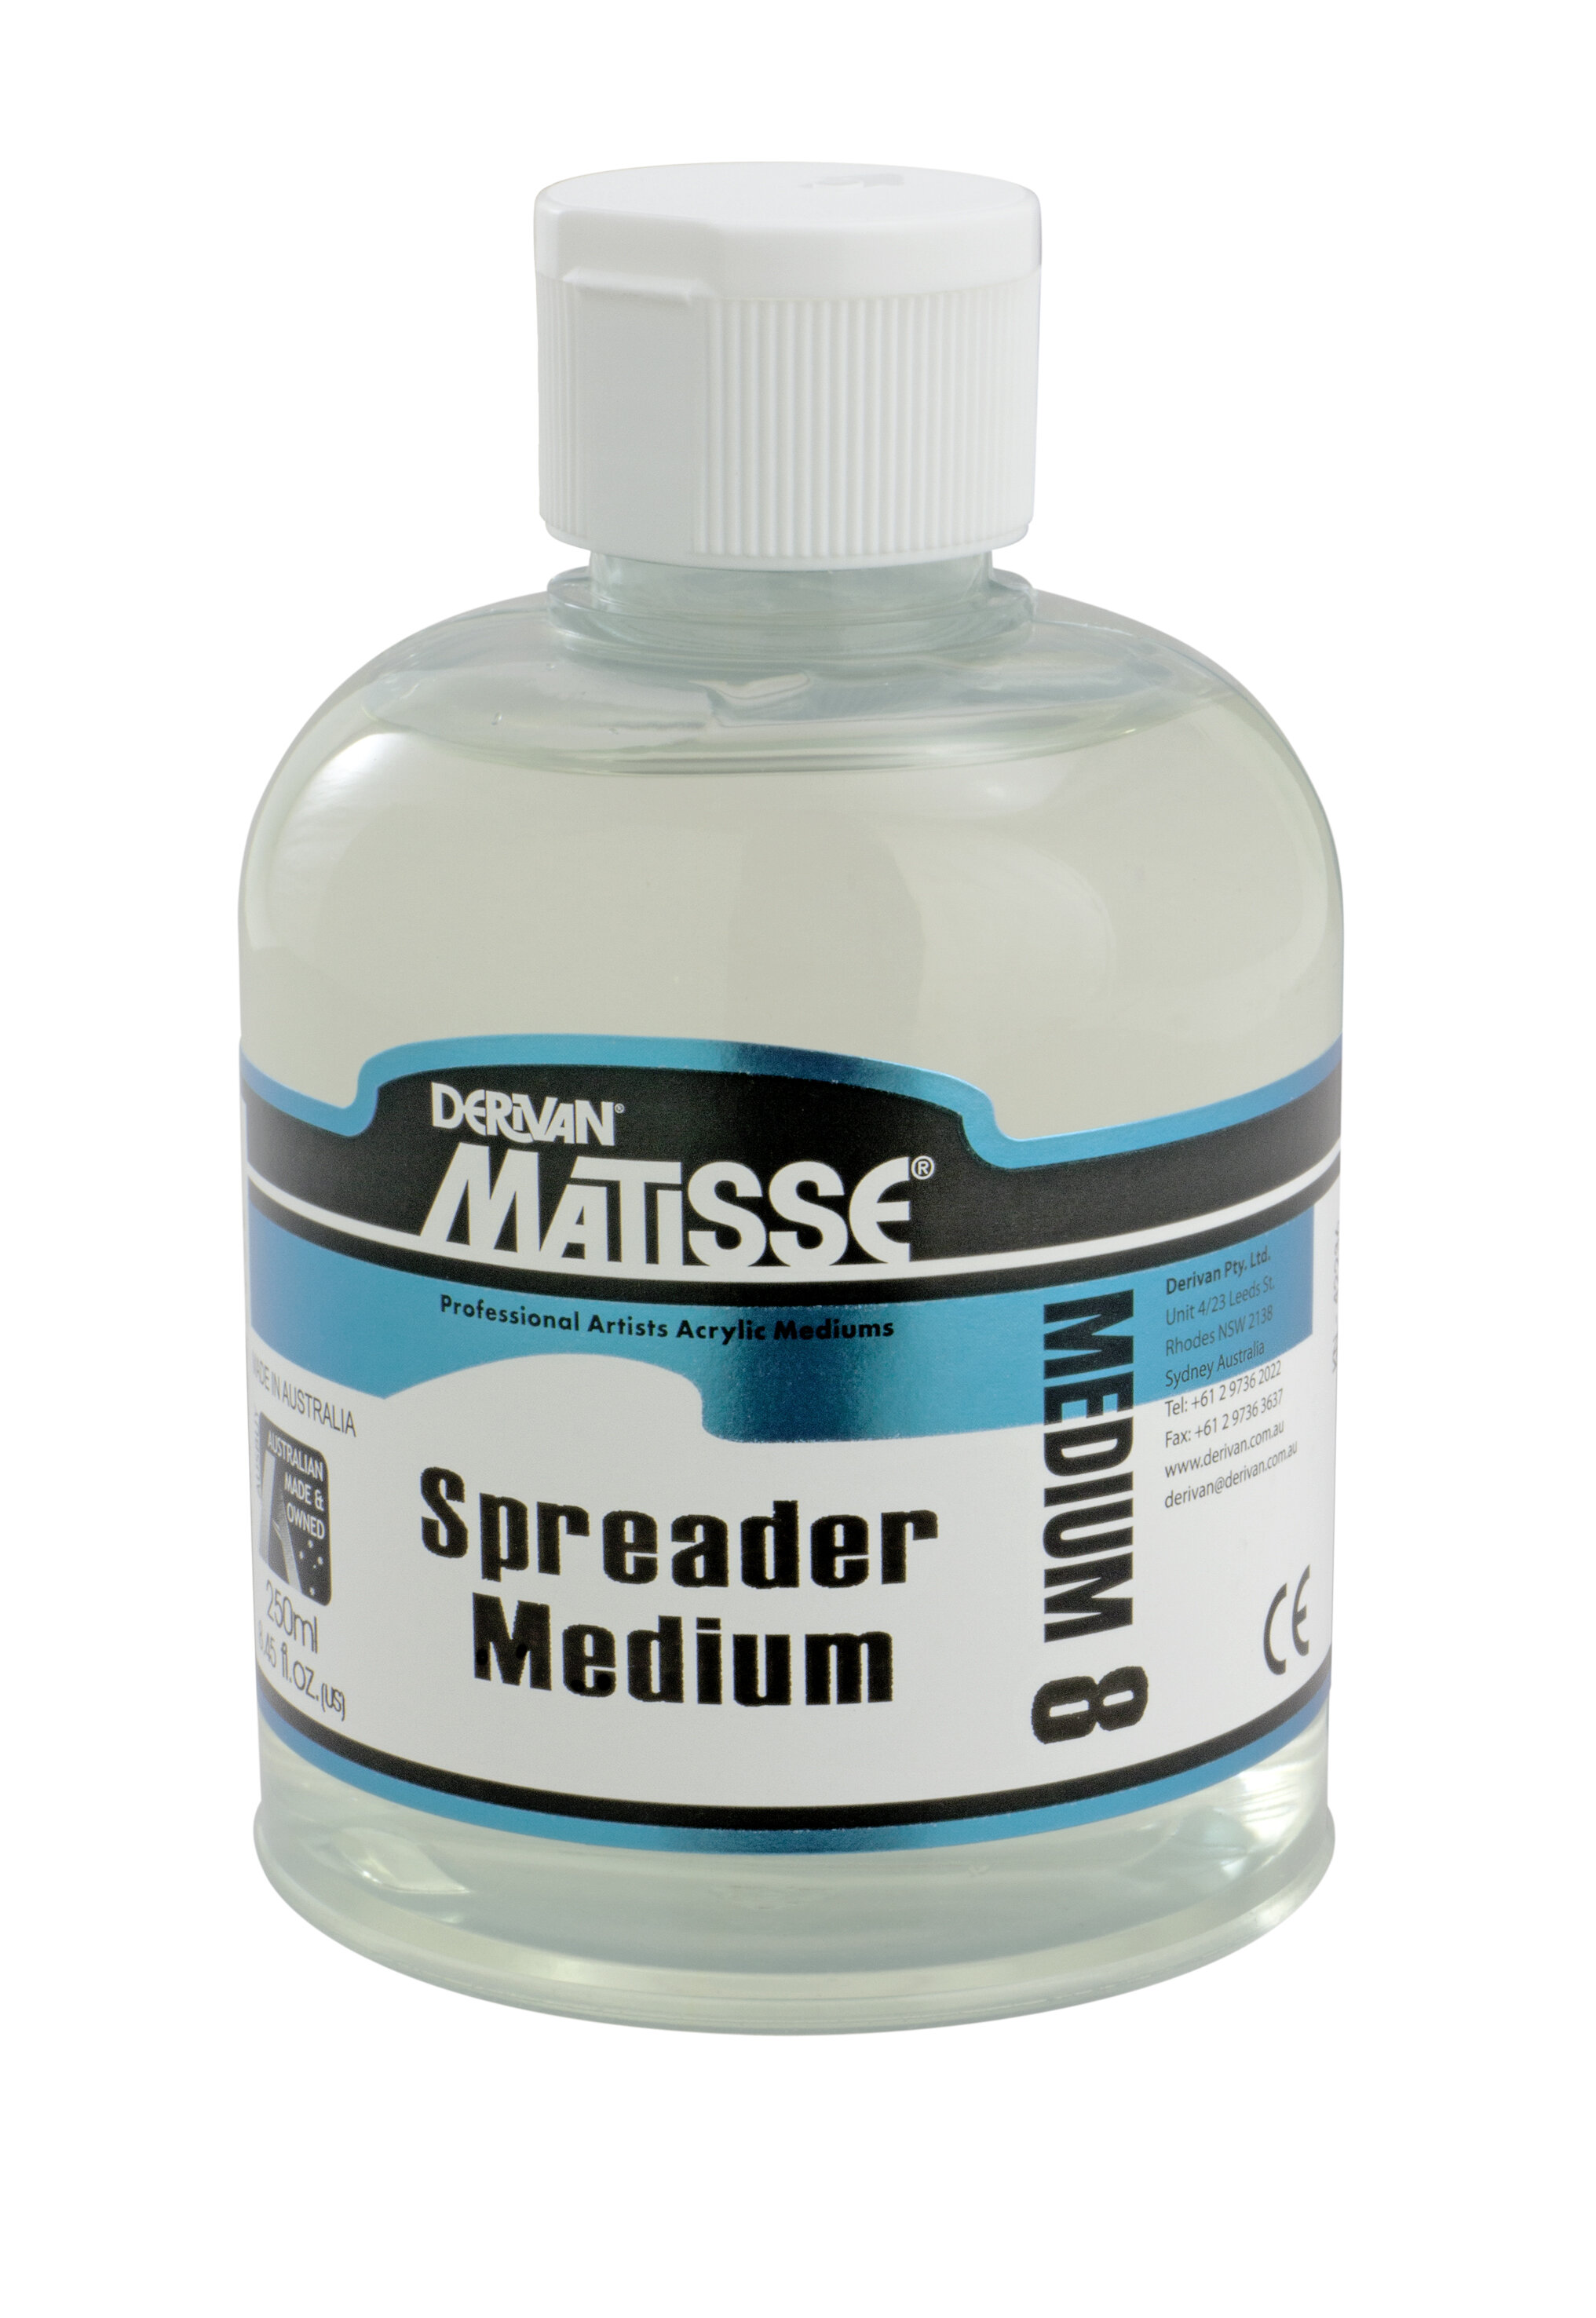 MM8 Spreader Medium - ———————Add to Matisse Colours to achieve washes and glazes.